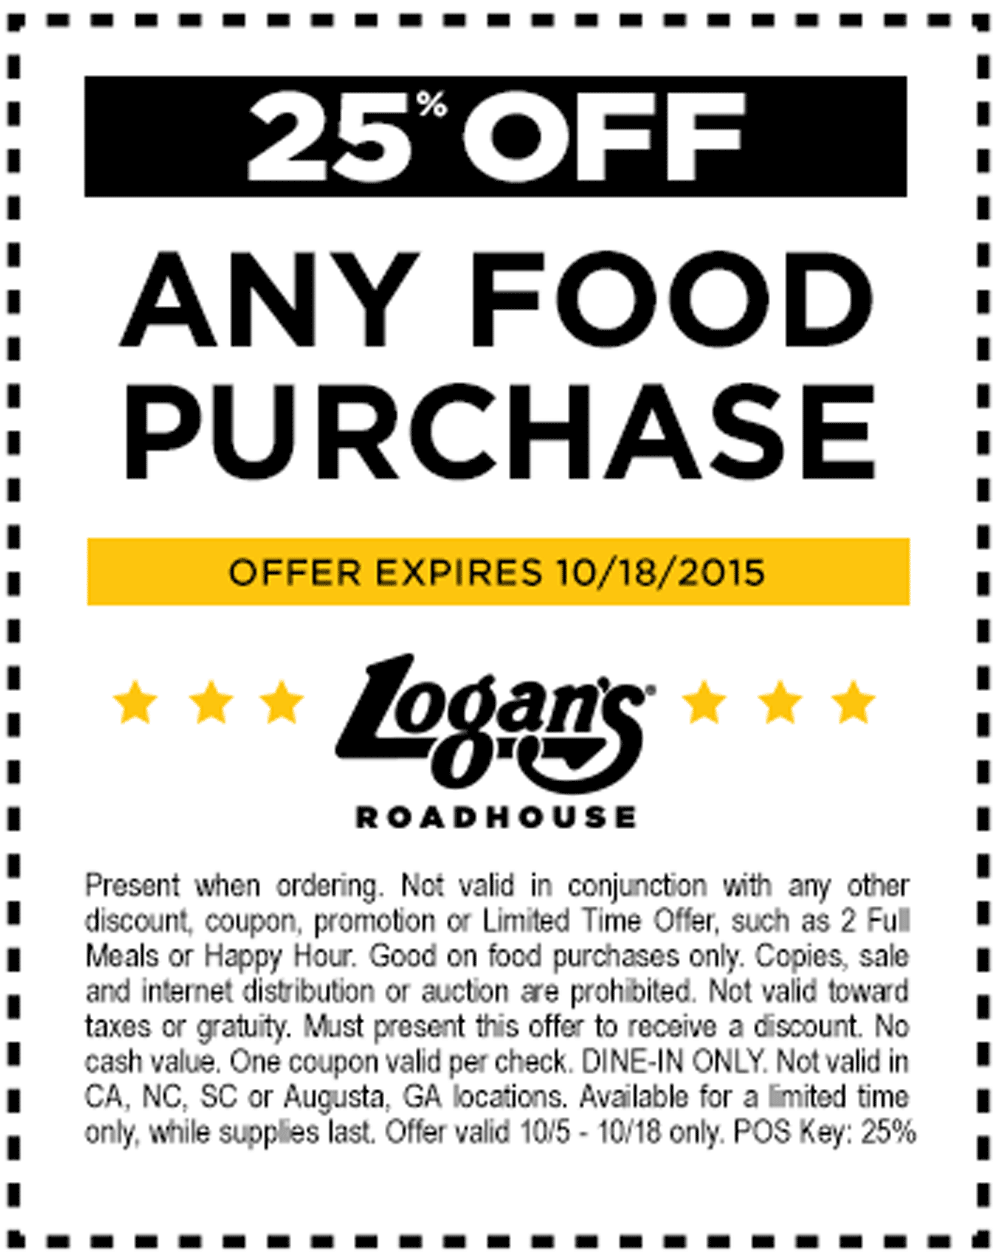 Logans Roadhouse Coupon July 2017 25% off at Logans Roadhouse